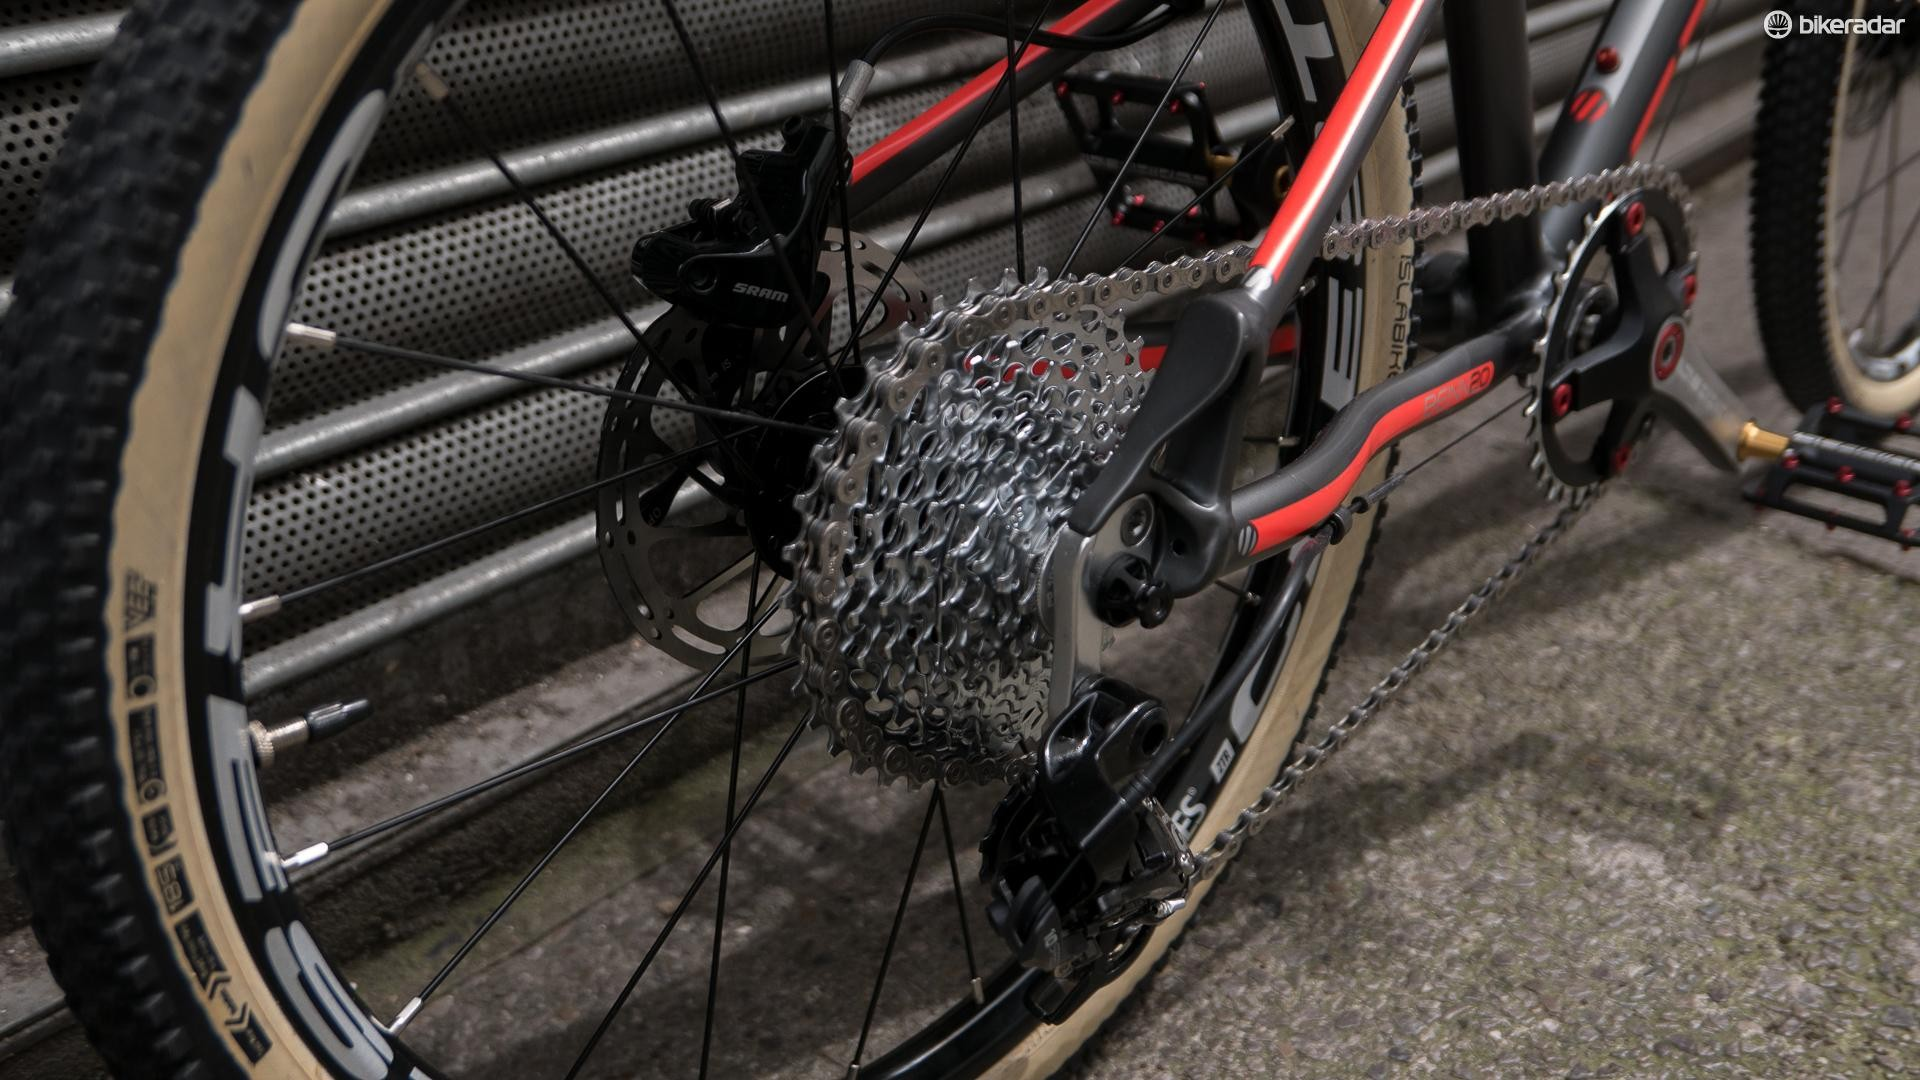 The drivetrain of the Beinn 20 is a thing of beauty, using an 11-36t 10spd SRAM GX cassette that's been modified to 9spd unit